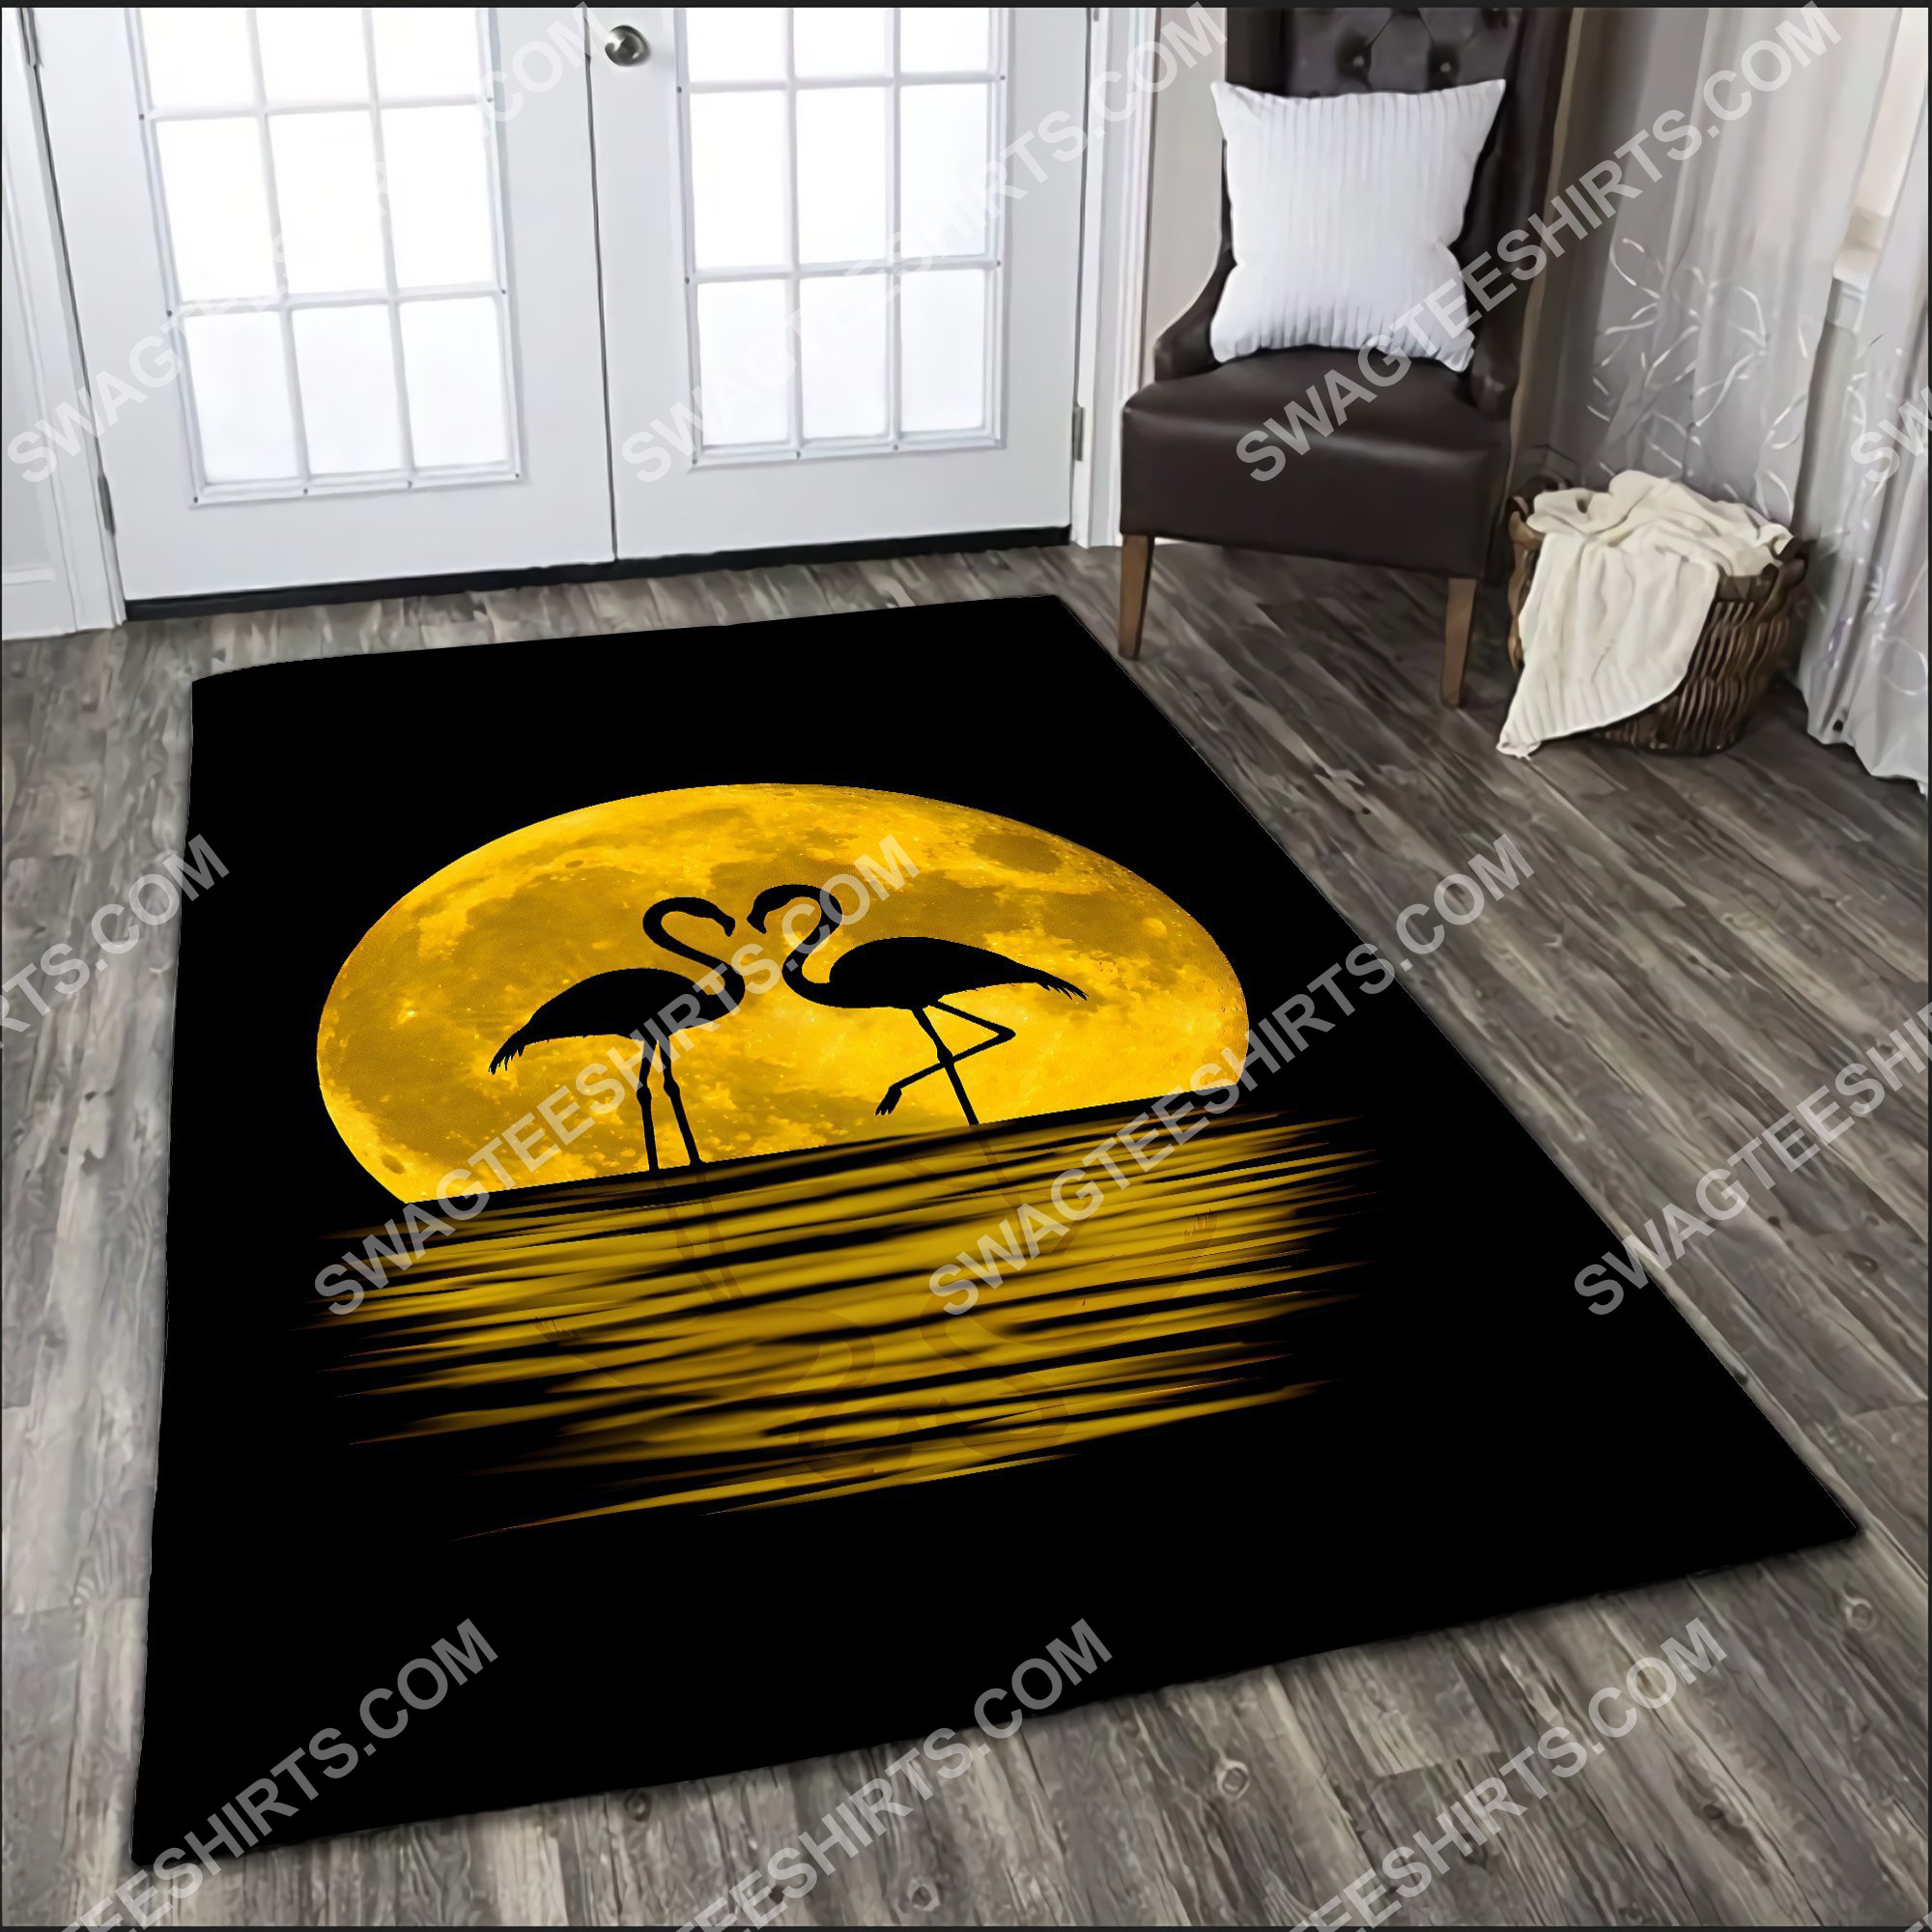 flamingo in the moon all over printed rug 4(1)